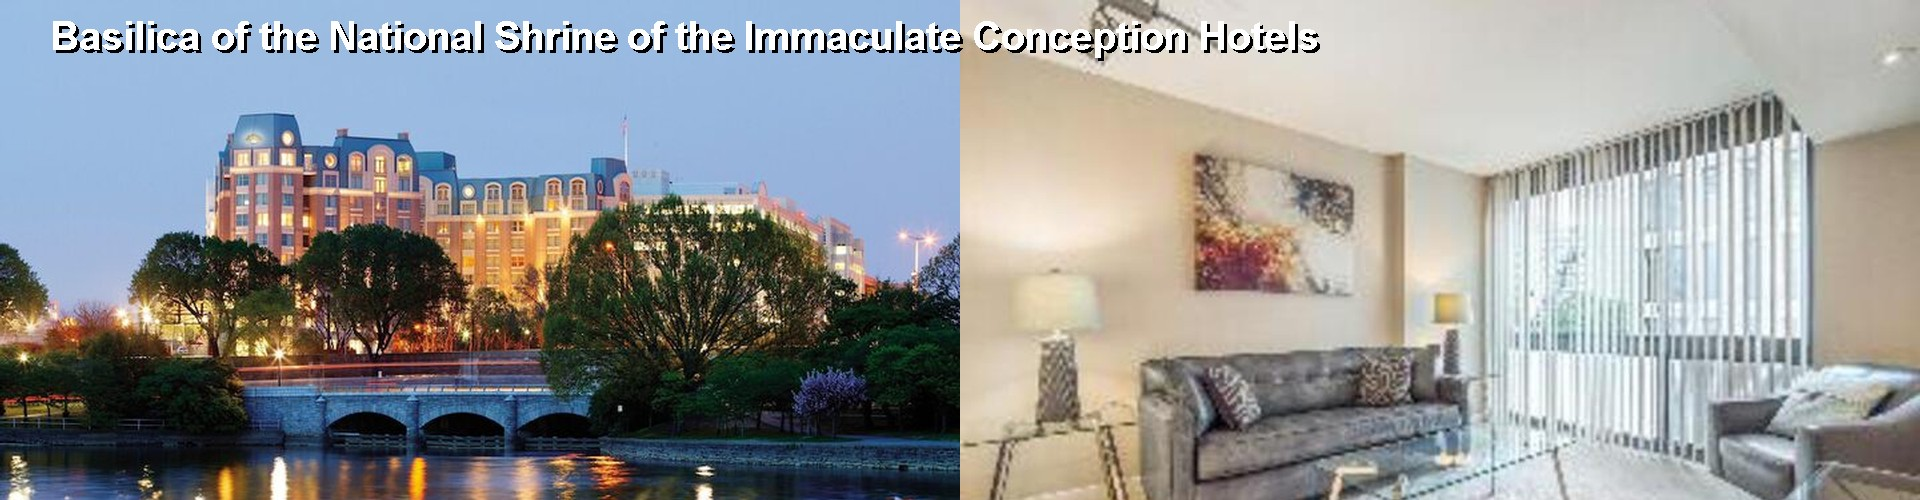 5 Best Hotels near Basilica of the National Shrine of the Immaculate Conception